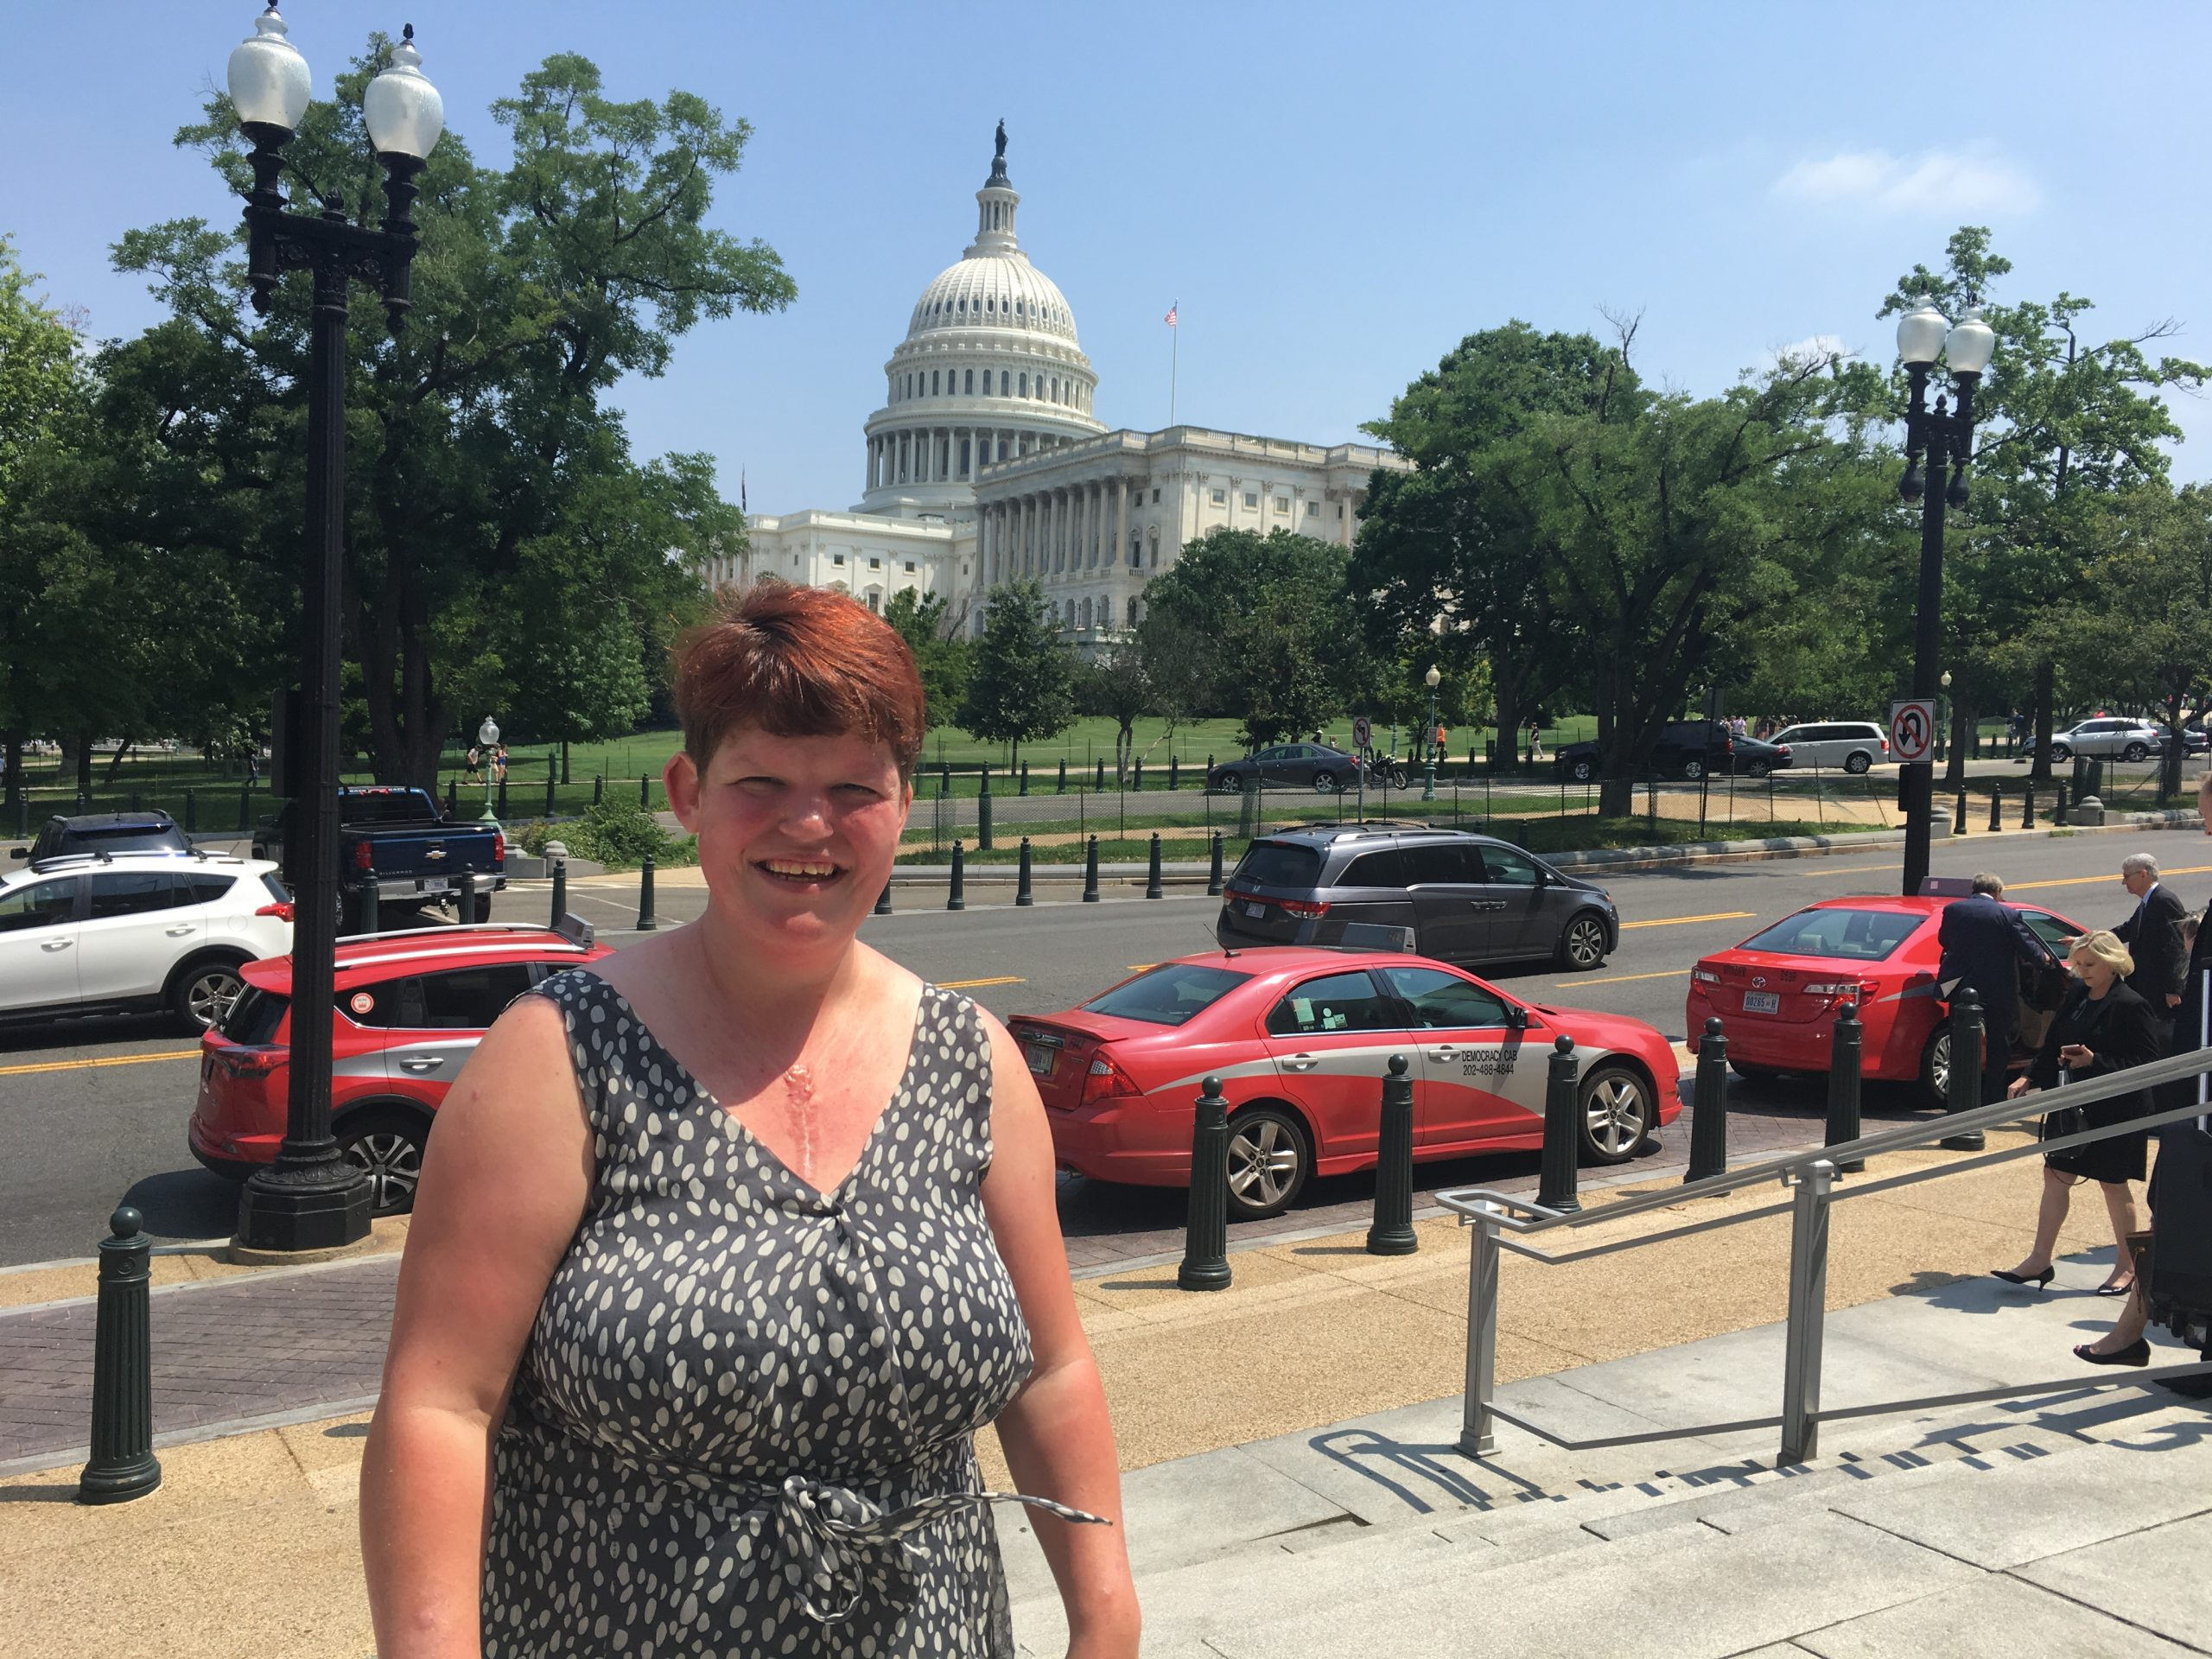 Jessica, an Adelante associate, stands in front of the Capitol Building in Washington, D.C. It is here where the ADA was voted on 30 years ago.